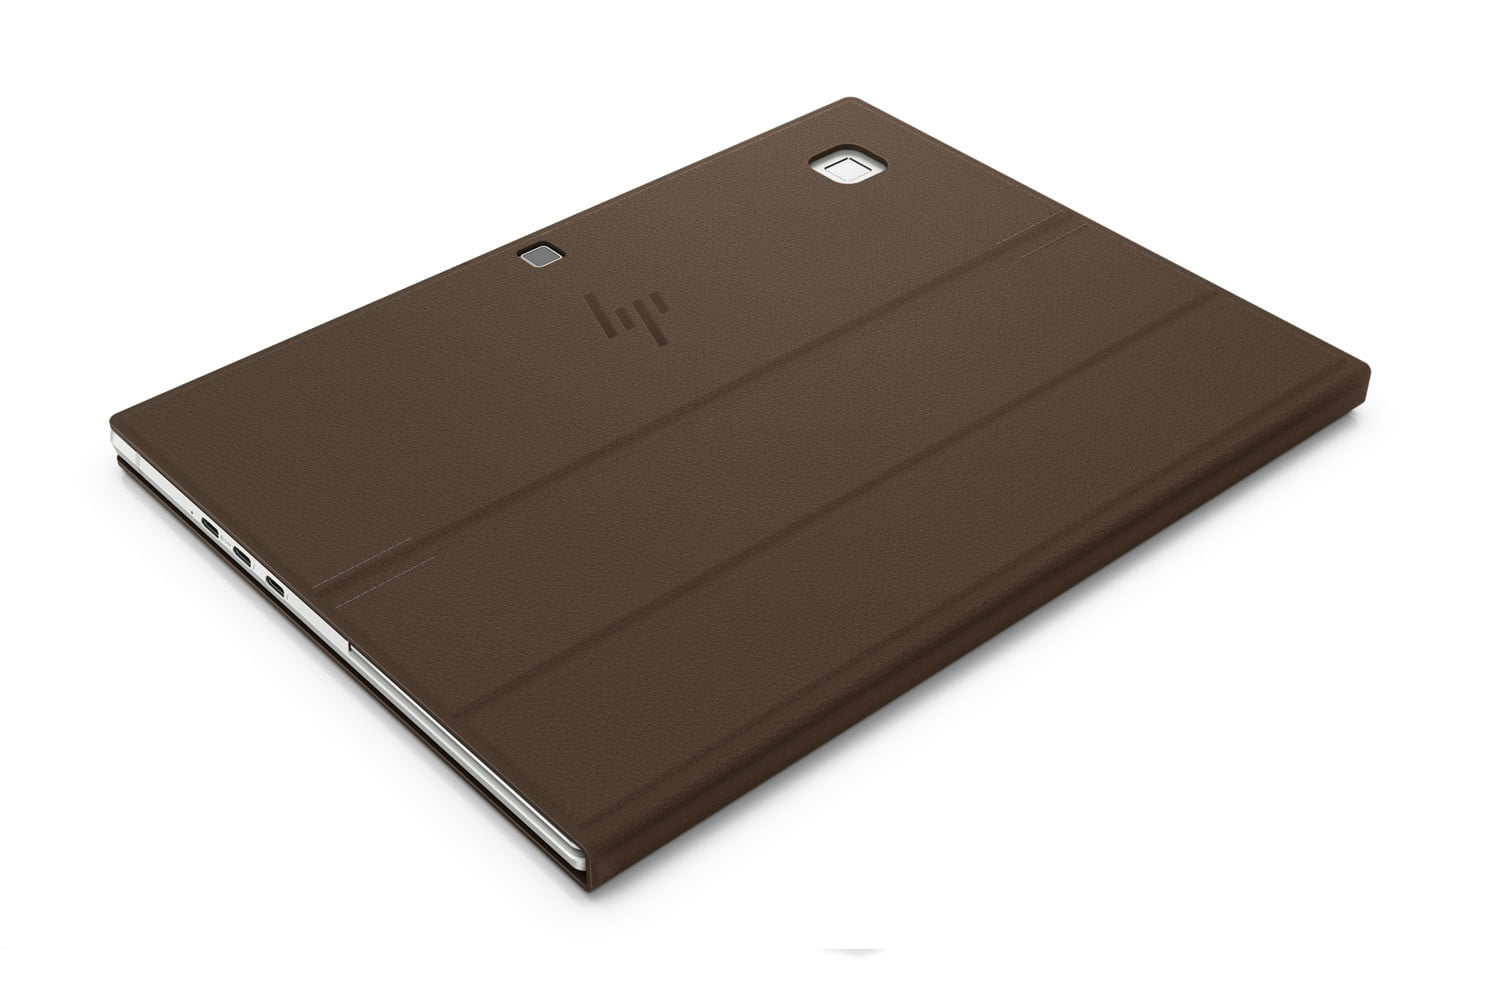 HP Elite x2 G4 with leather finish.